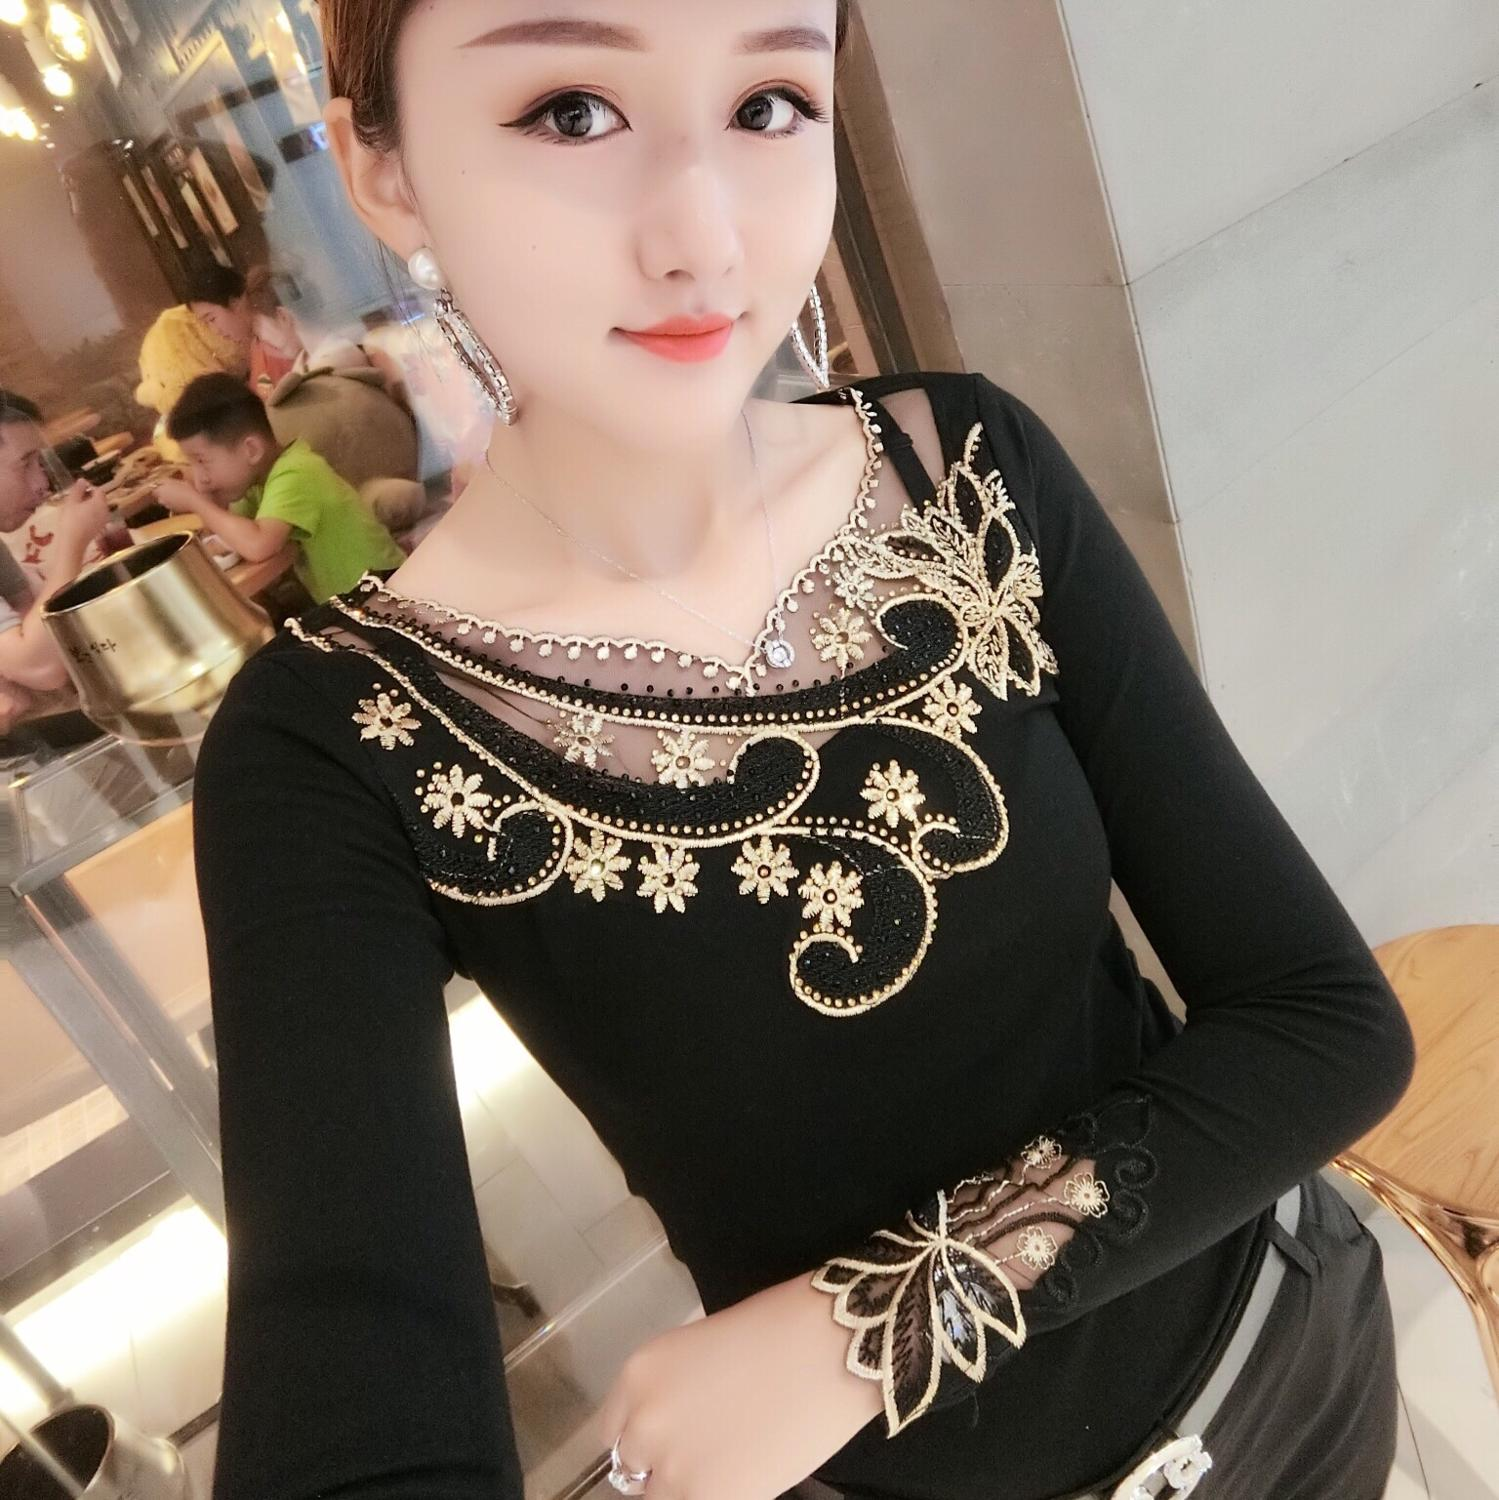 Fashion Sexy Embroidery Patchwork Flowers Diamonds Tshirt 2019 New Autumn Winter Women Top Shirt Clothes Camiseta Mujer T98814